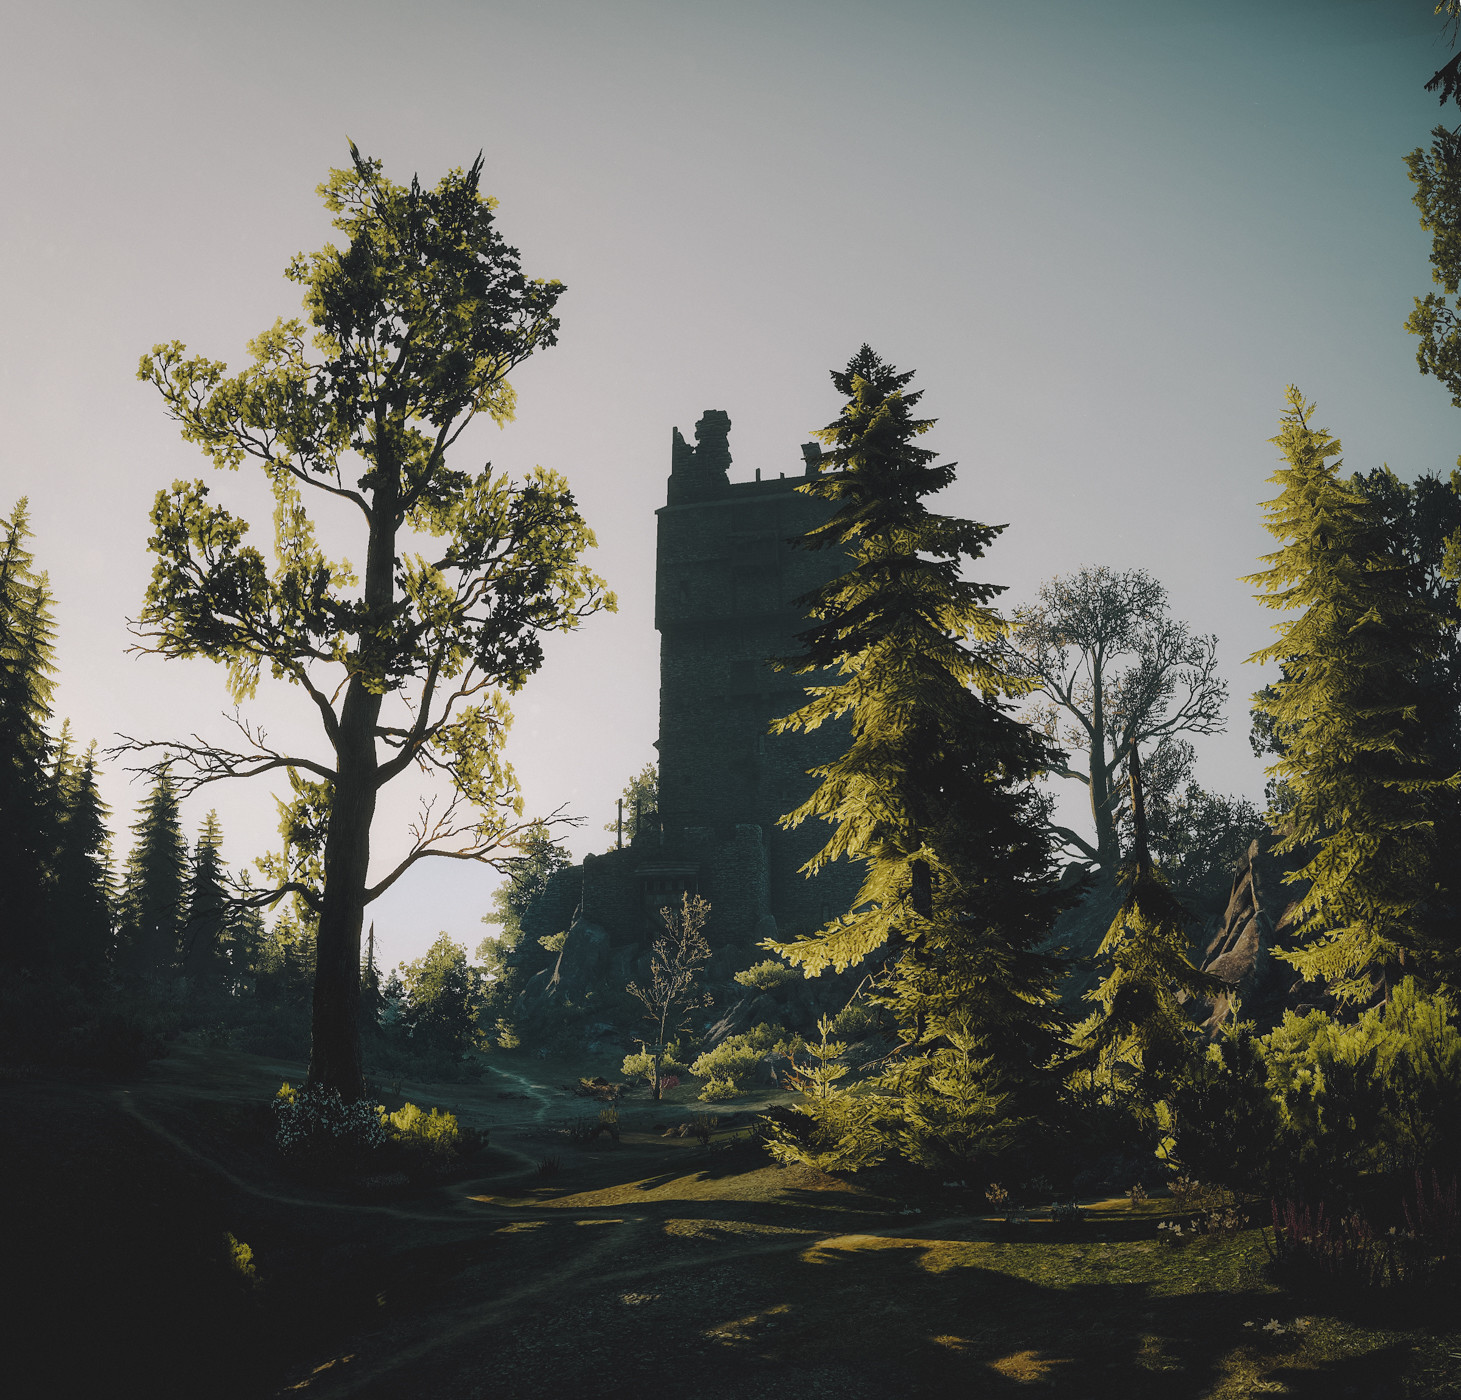 18486349241_4a65f741aa_h.jpg - The Witcher 3: Wild Hunt